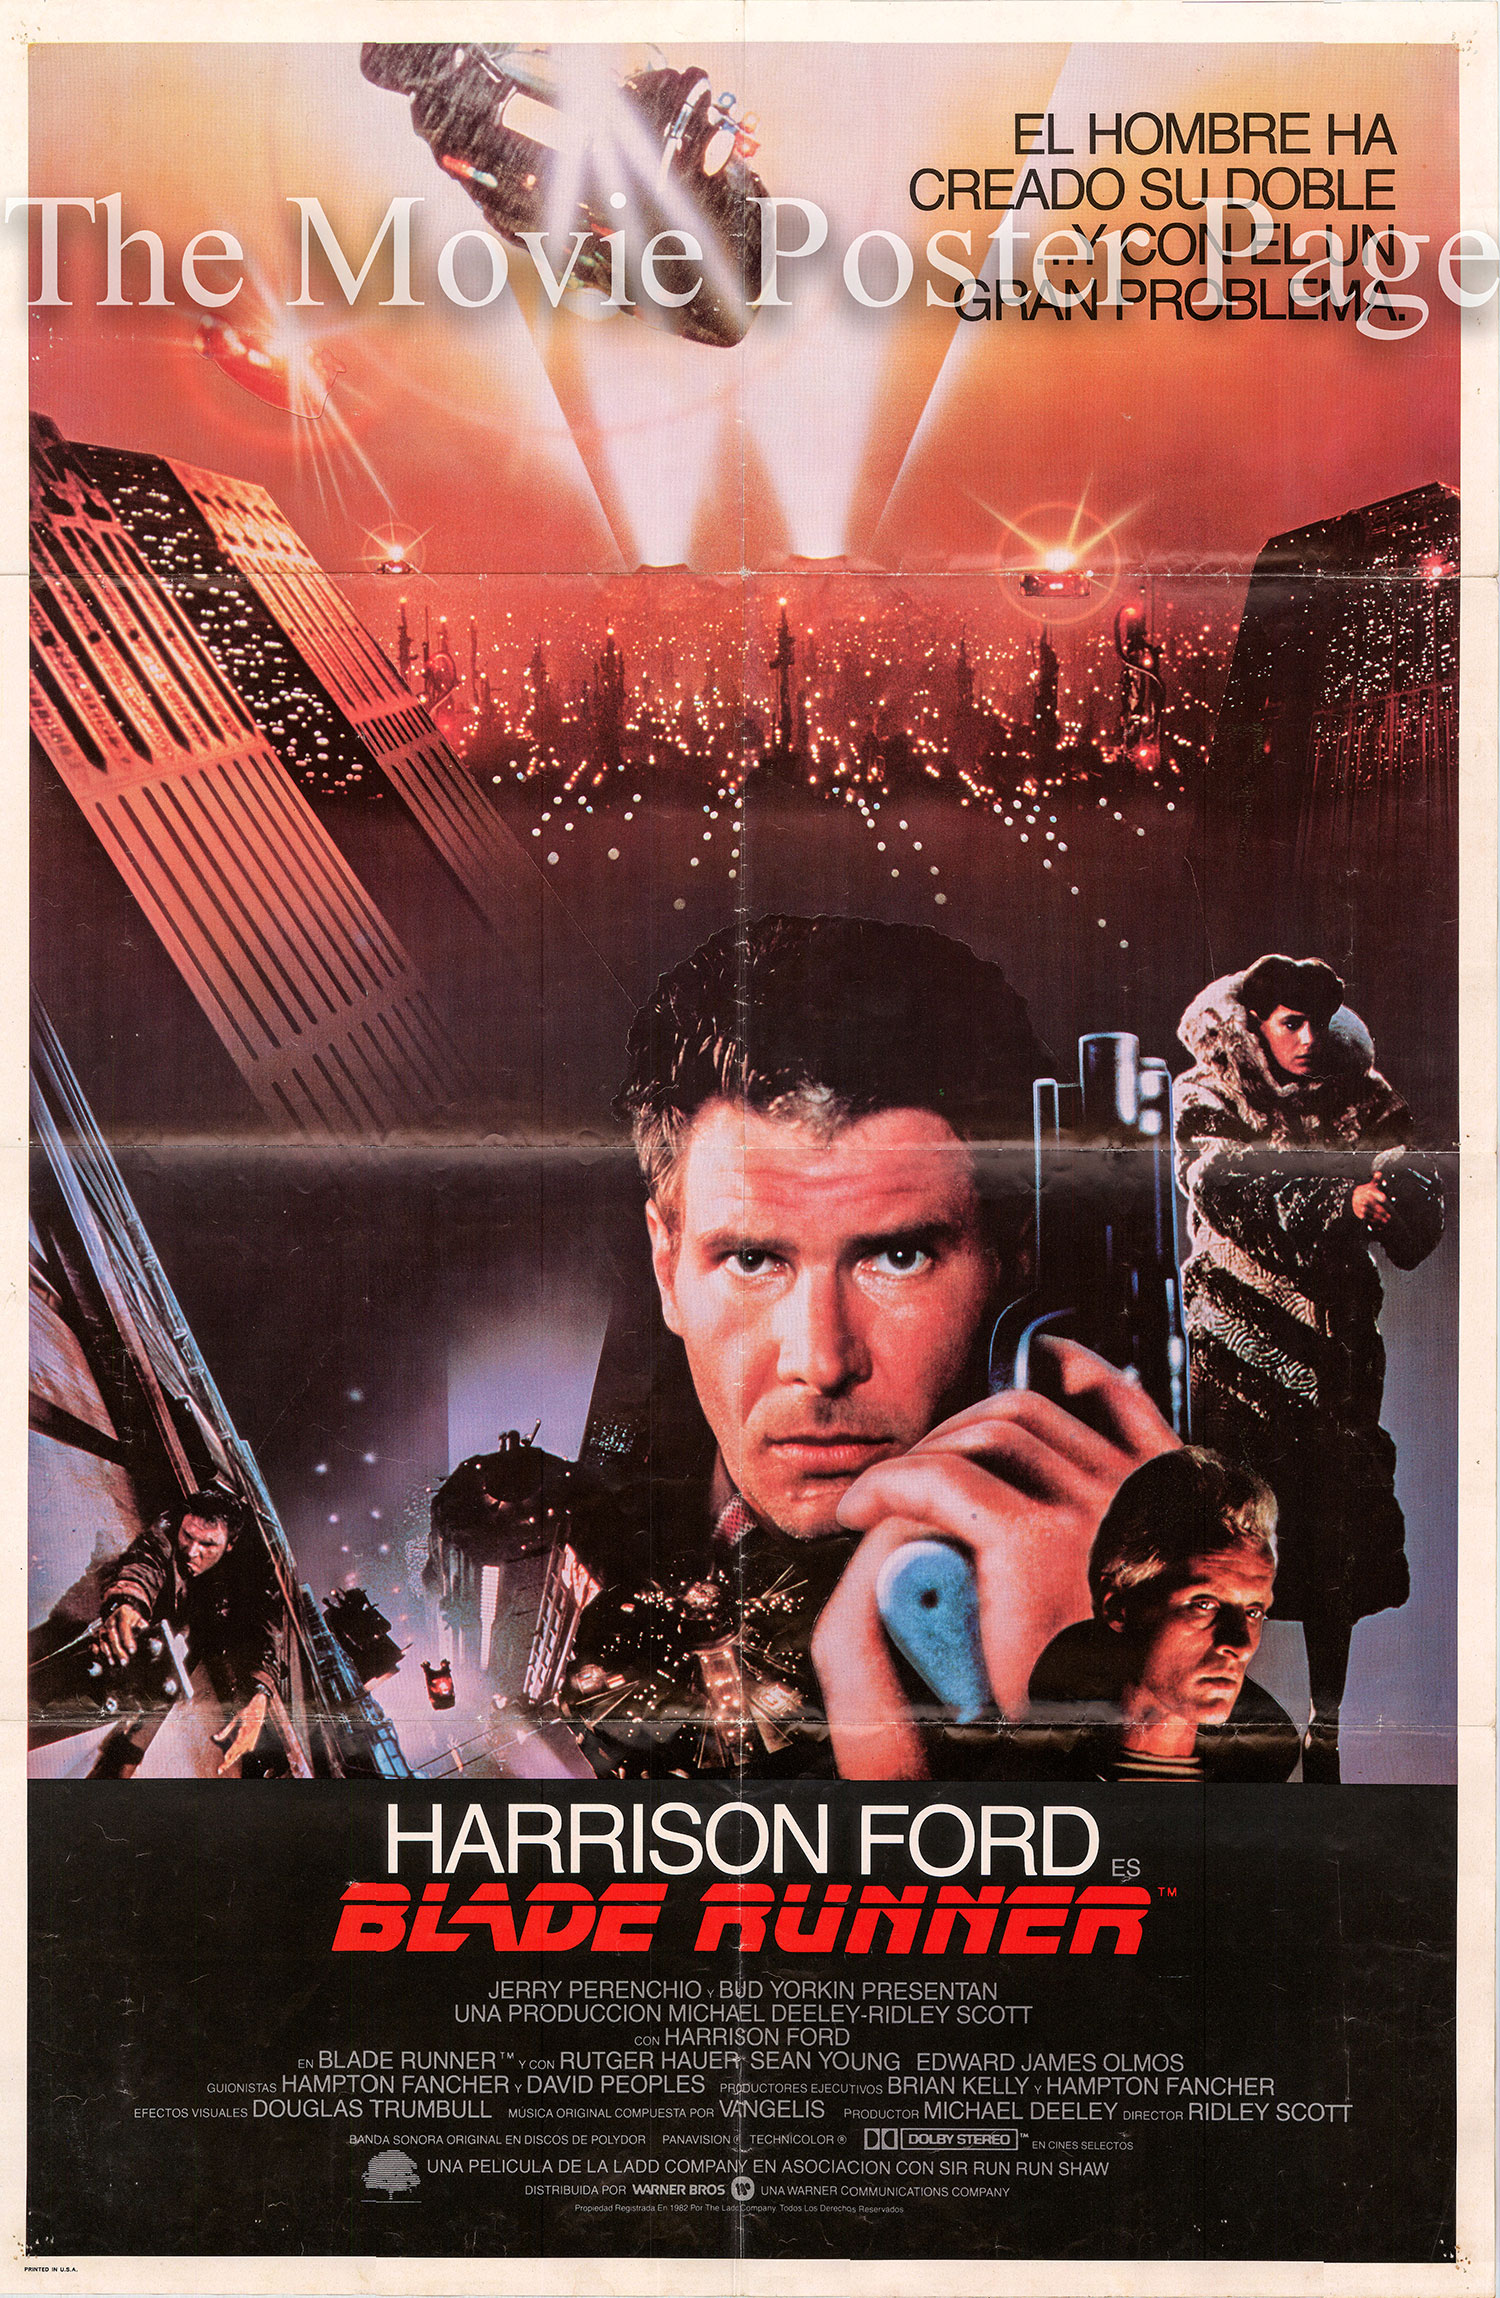 Pictured is a Spanish promotinal poster for the 1982 Ridley Scott film Blade Runner starring Harrison Ford.